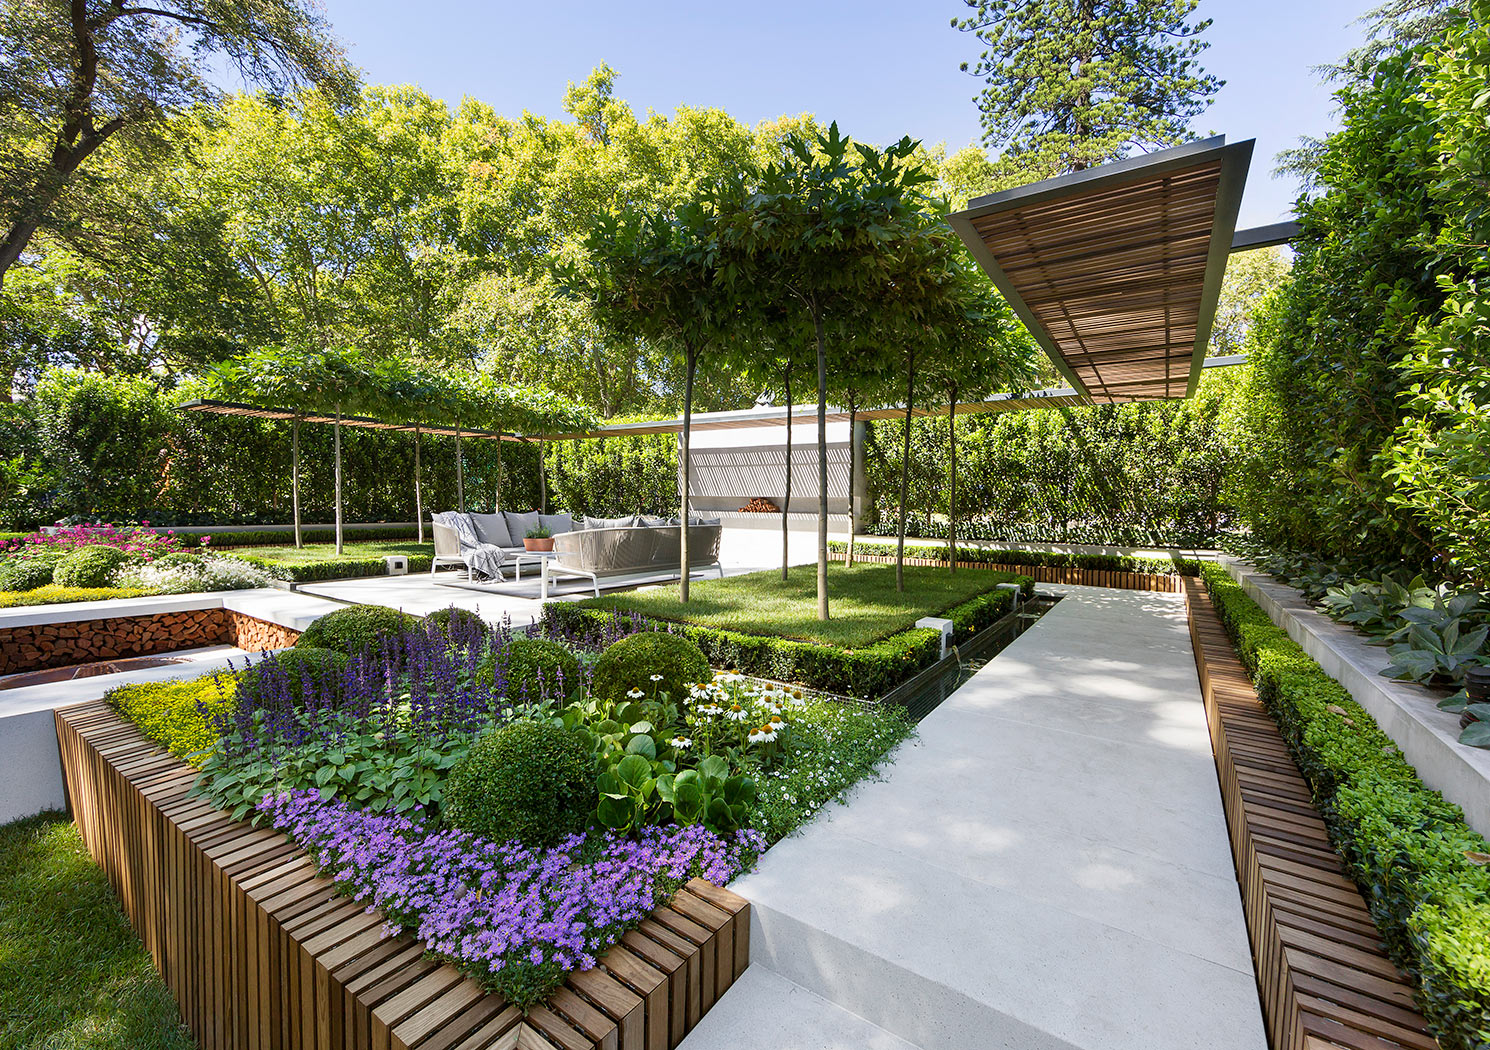 Landscape design melbourne nathan burkett design for Landscape architecture